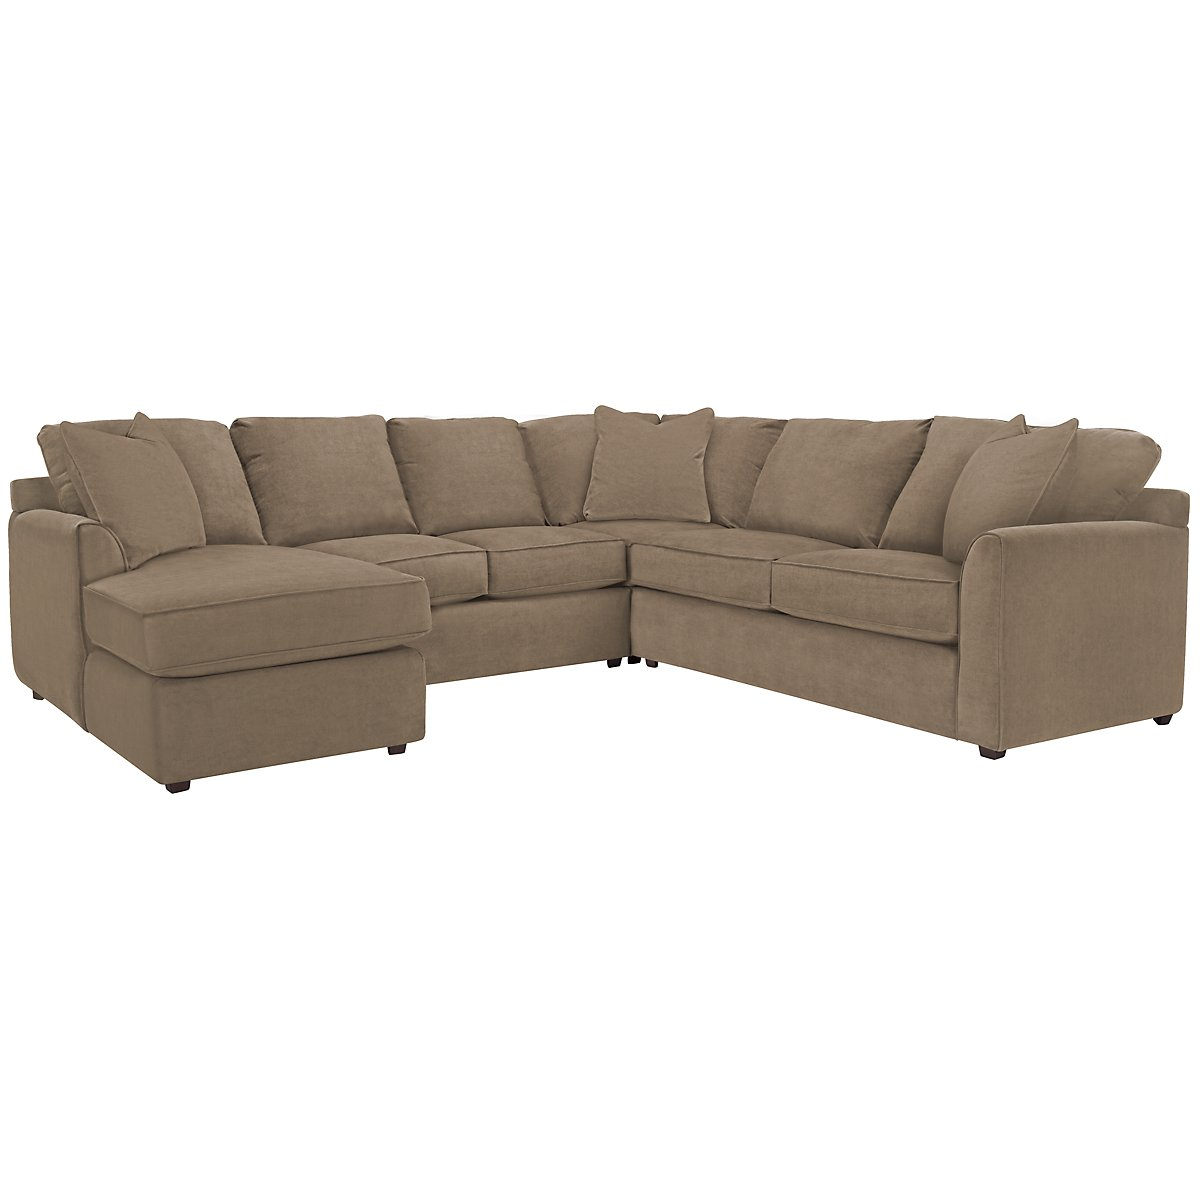 Express3 Lt Brown Microfiber Small Left Chaise Sectional